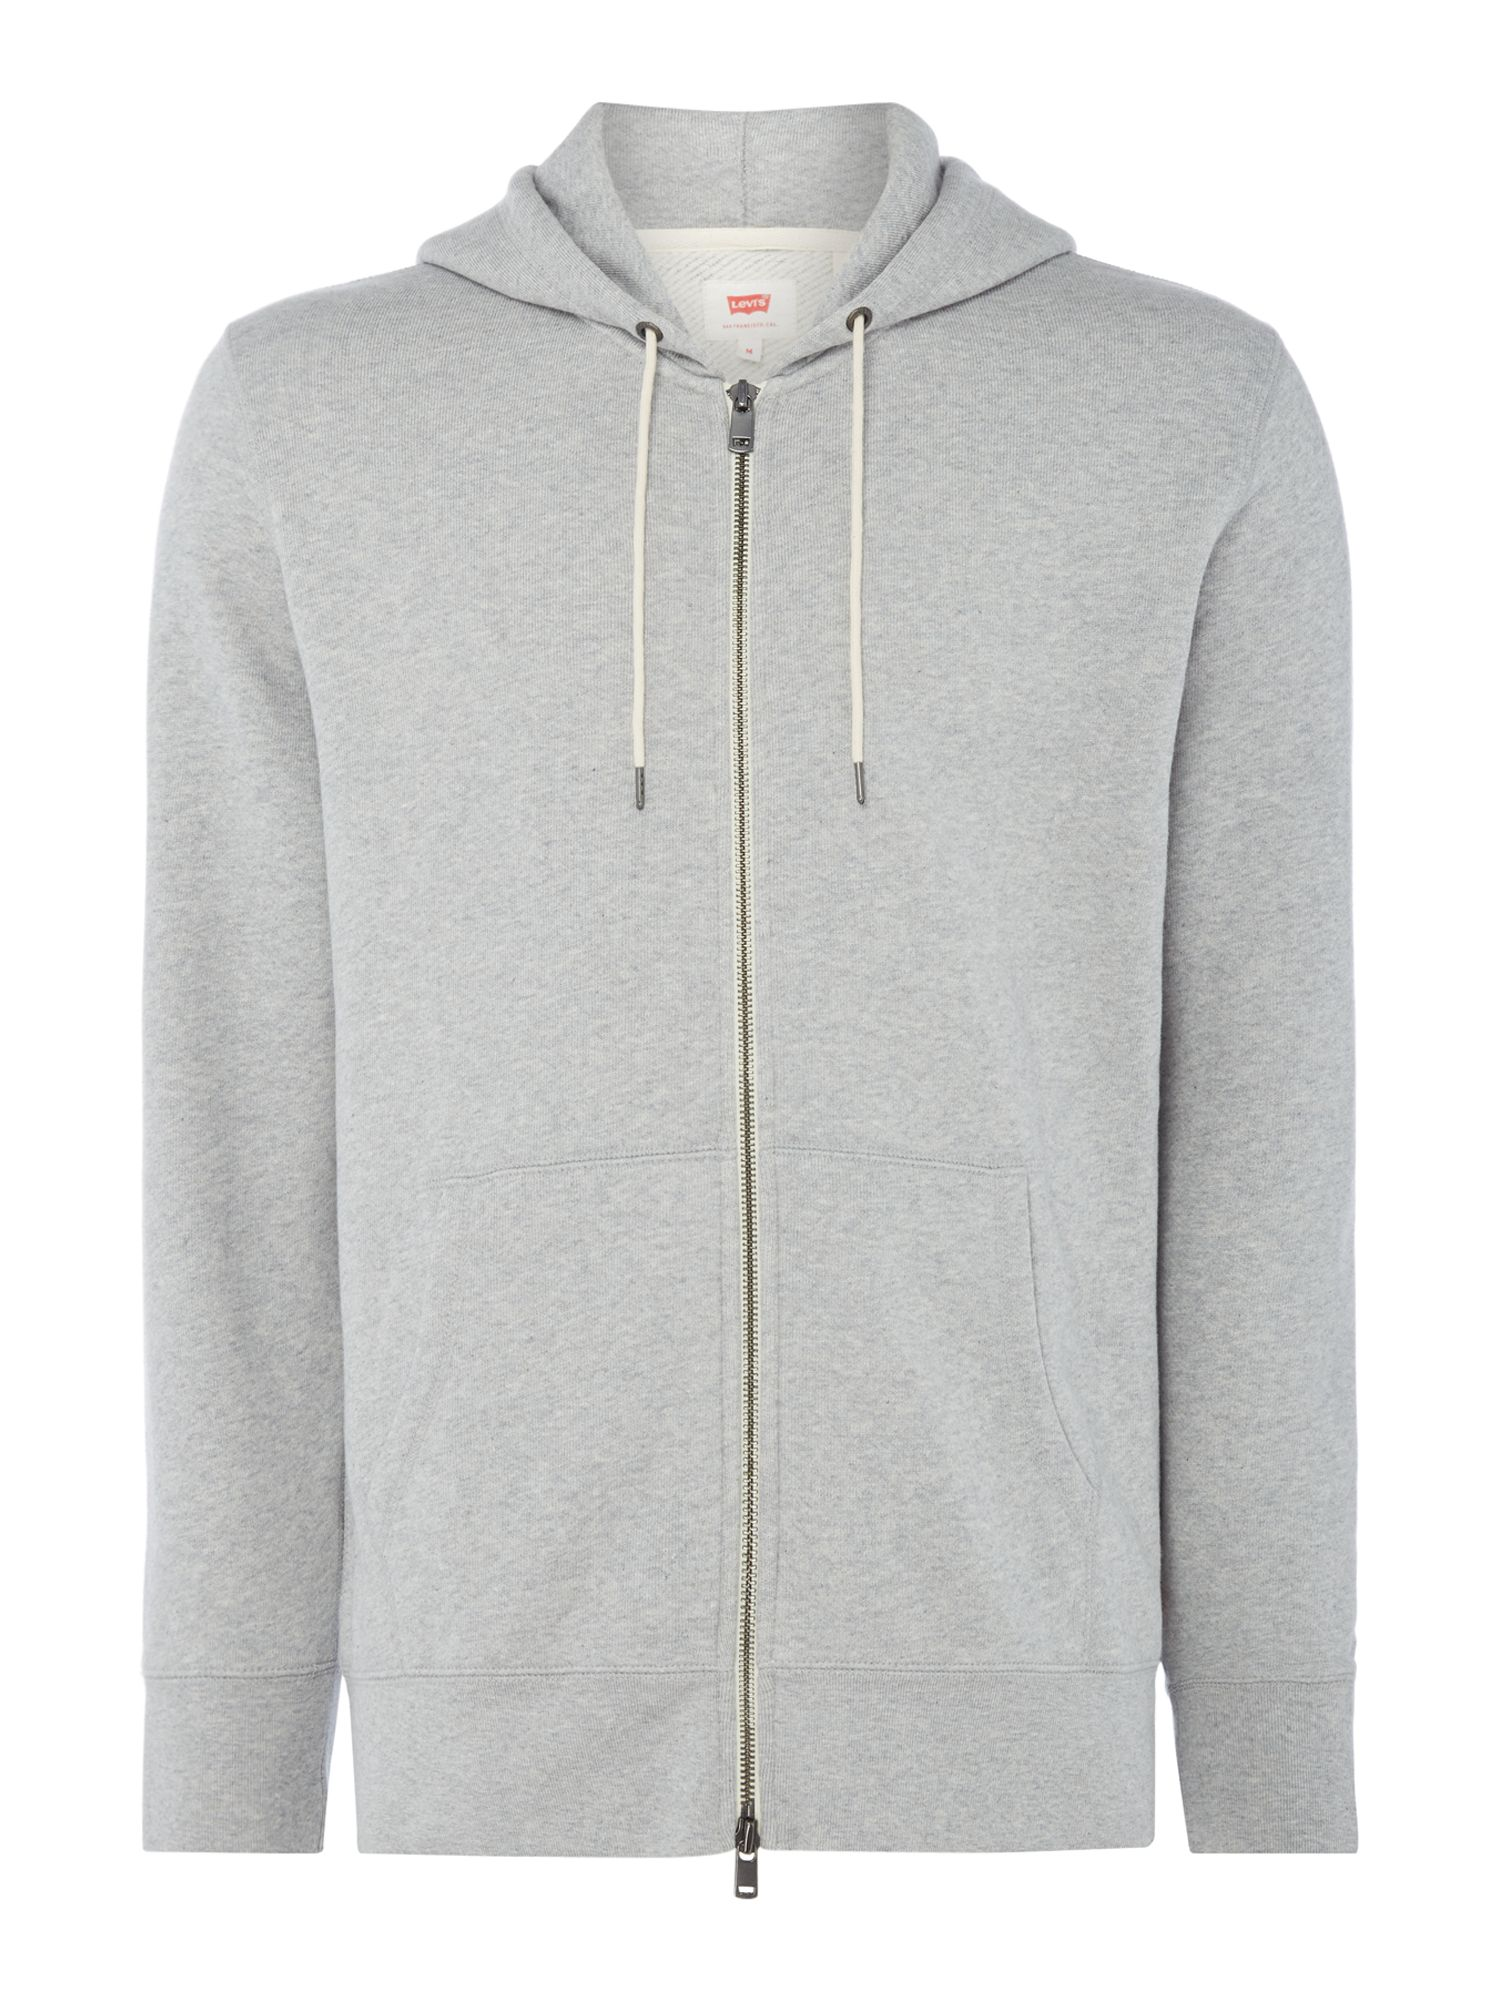 Men's Levi's Original Crew 3 Sweatshirt, Grey